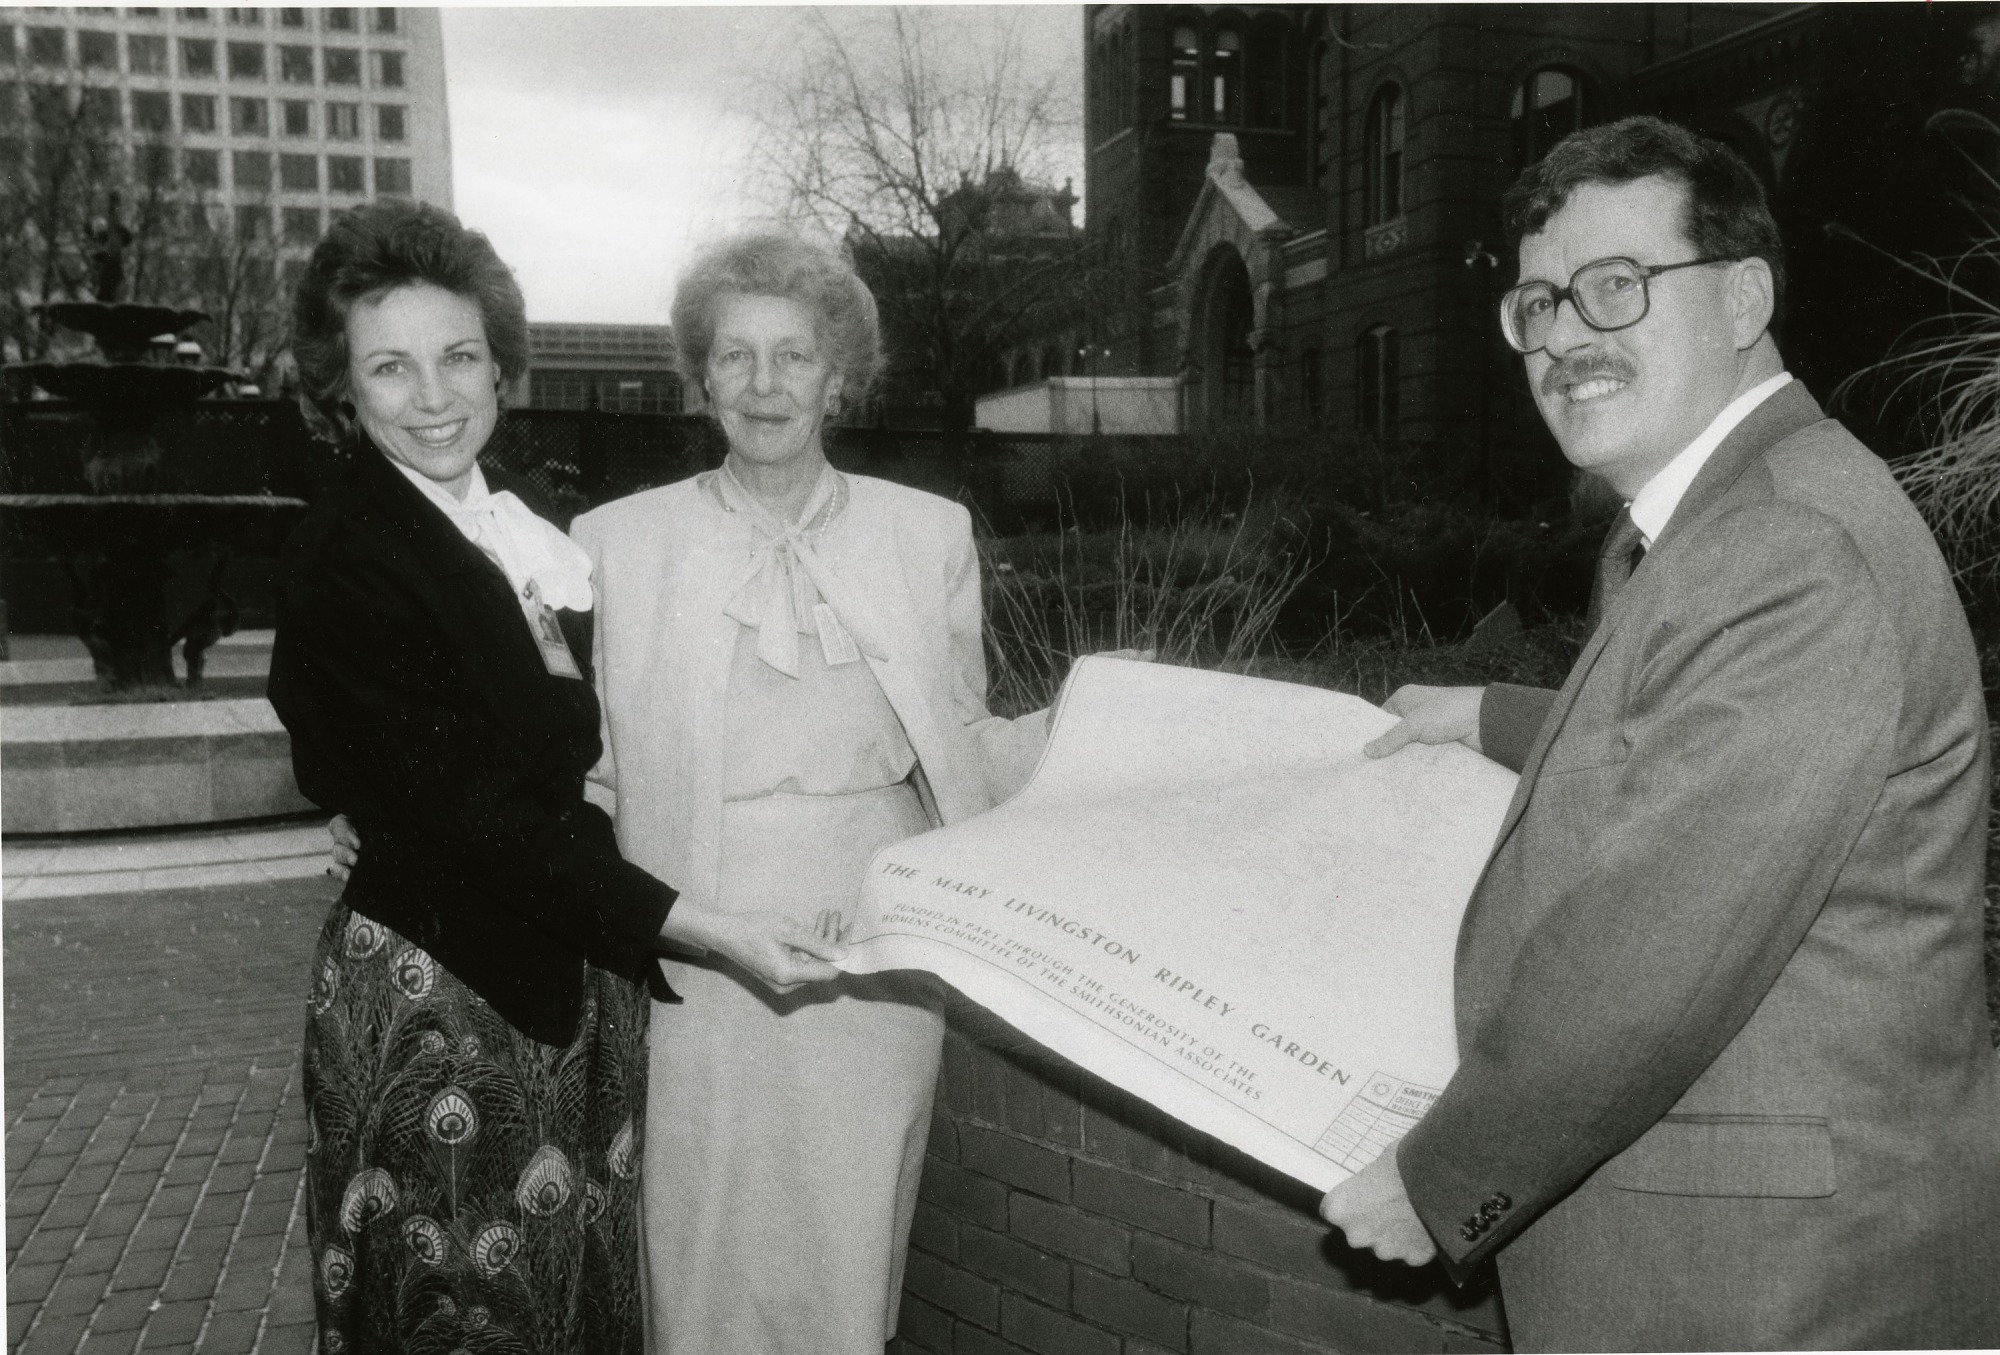 Holding Plans for the Mary Ripley Garden